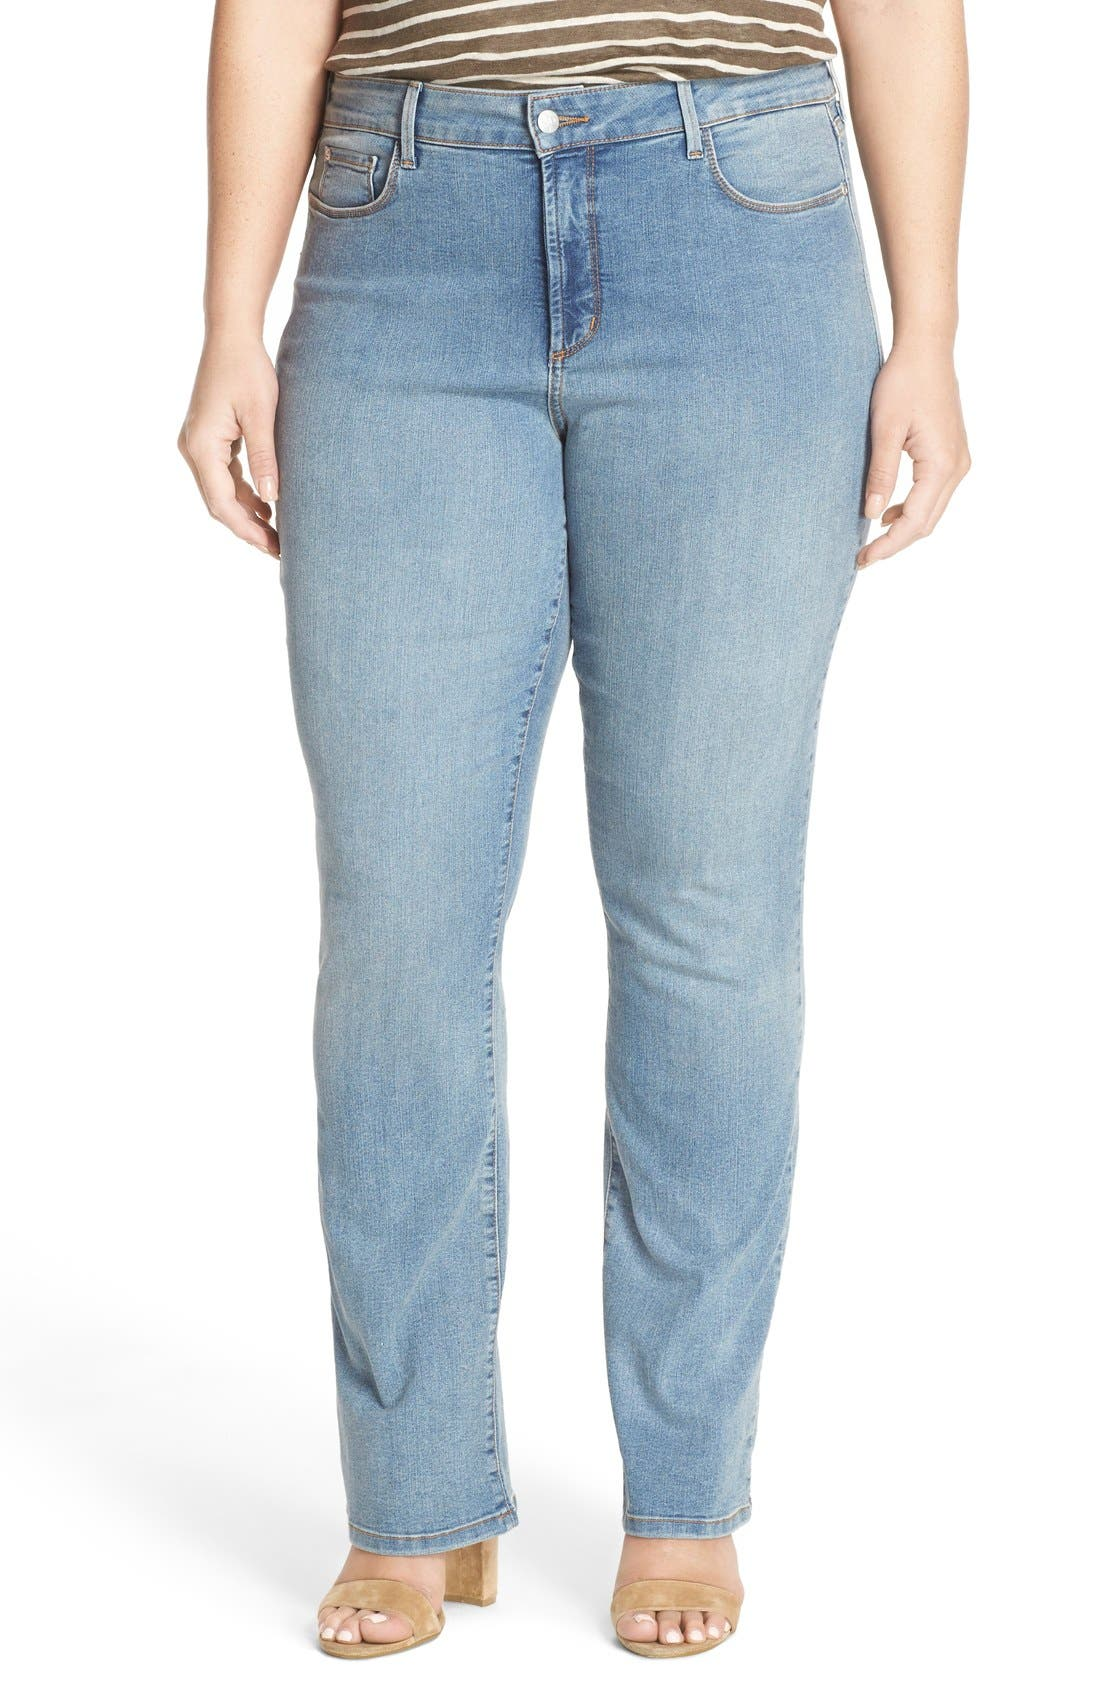 Alternate Image 1 Selected - NYDJ 'Billie' Stretch Mini Bootcut Jeans (Plus Size)